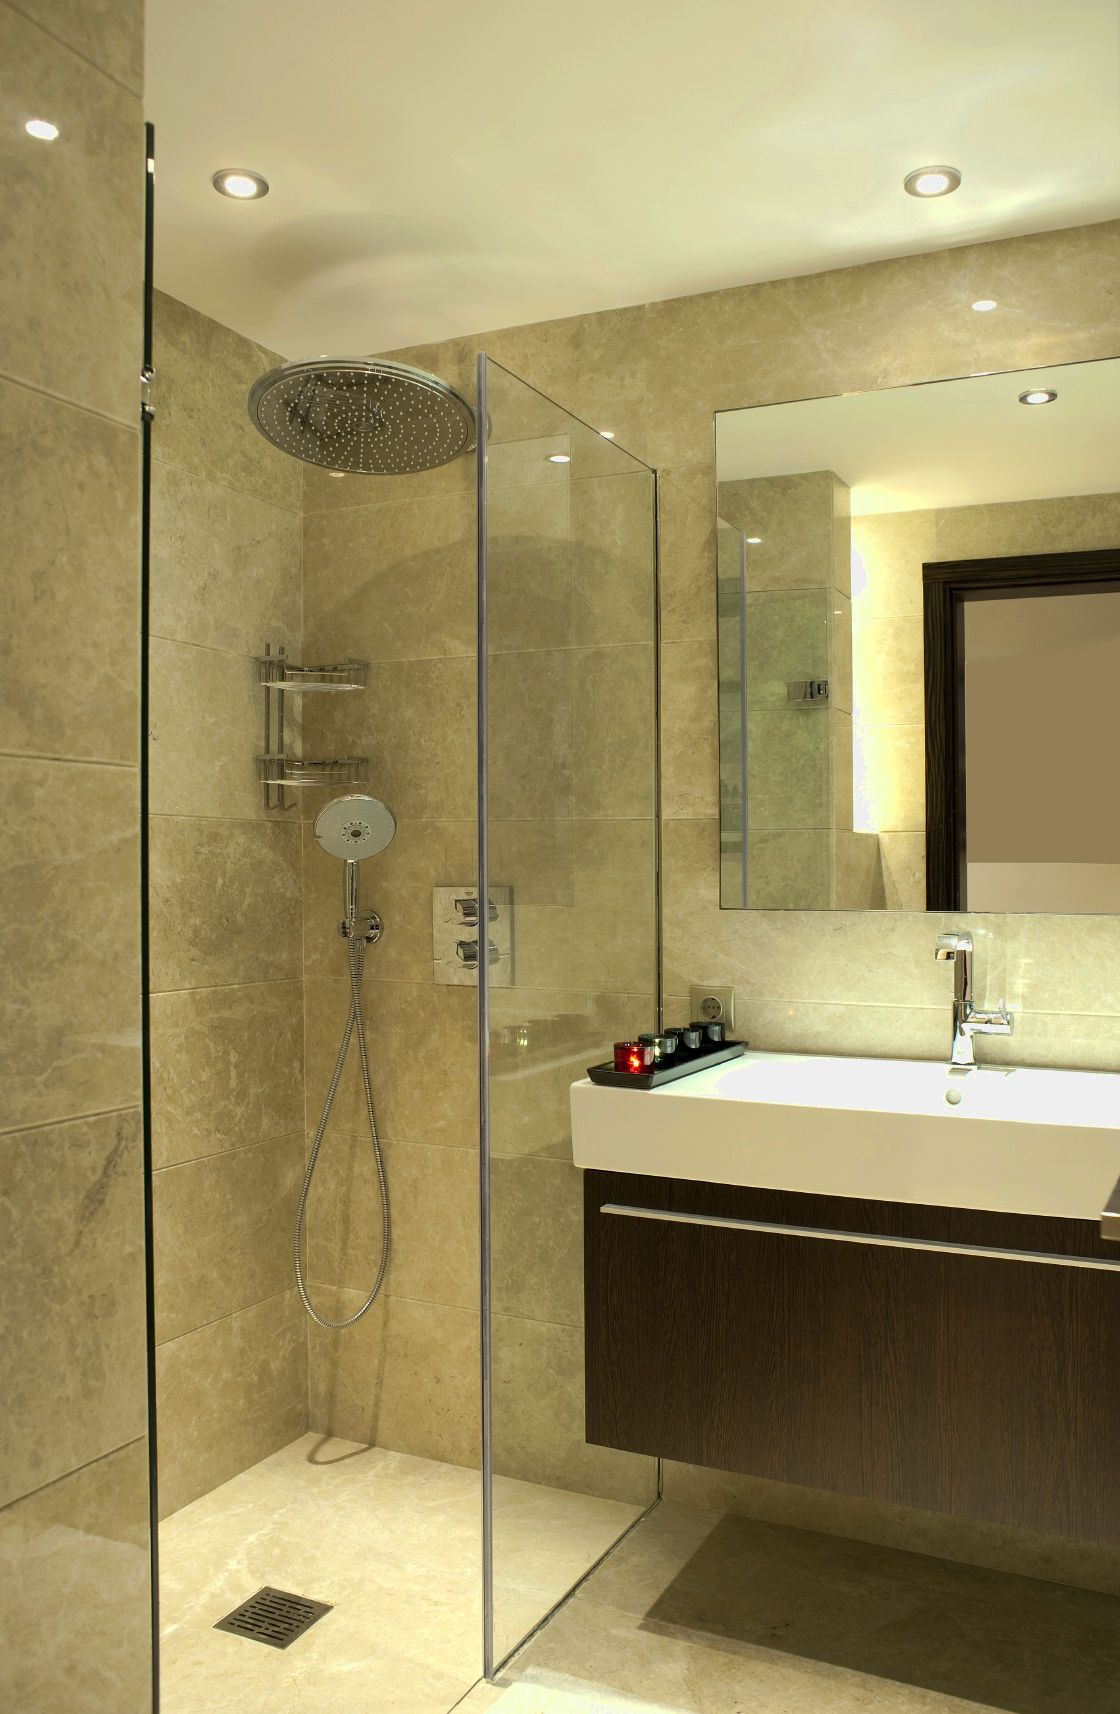 Ensuite Bathroom Ideas Best Bathroom Remodel Ideas On A Budget Master Guest Bathroom